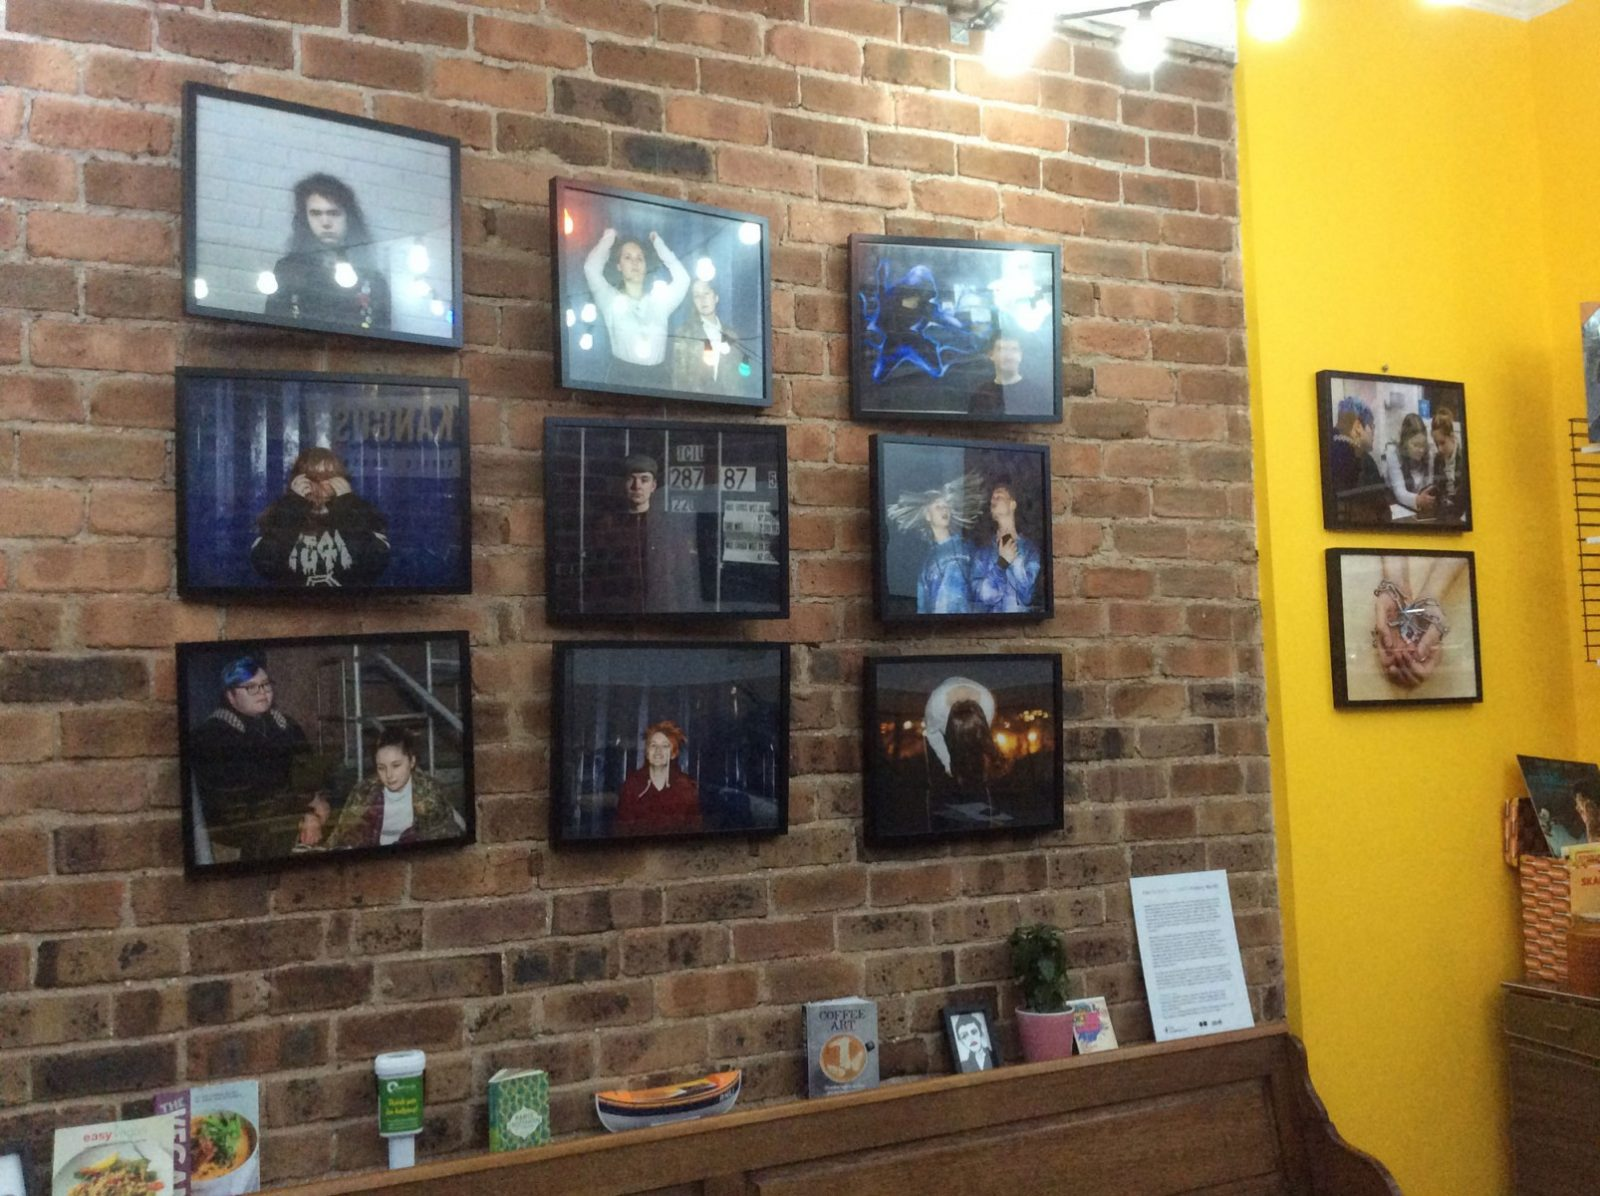 Exhibition in Kangus Cafe